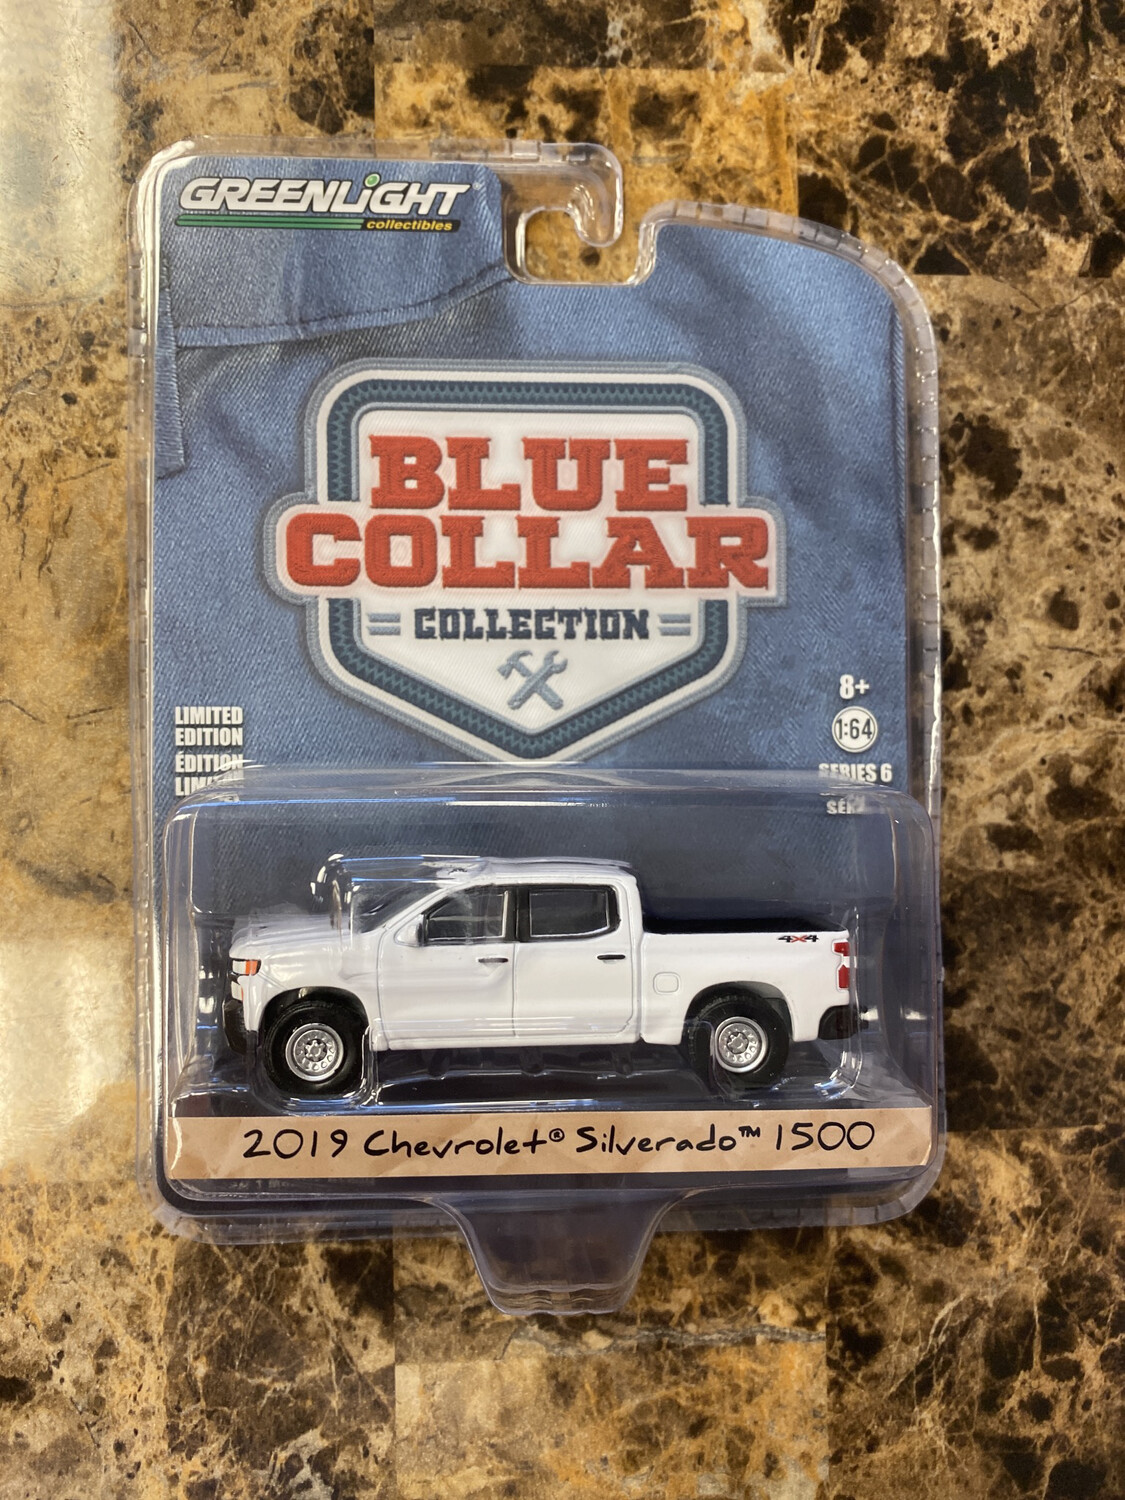 Greenlight-Blue Collar 2019 Chevrolet Silverado 1500